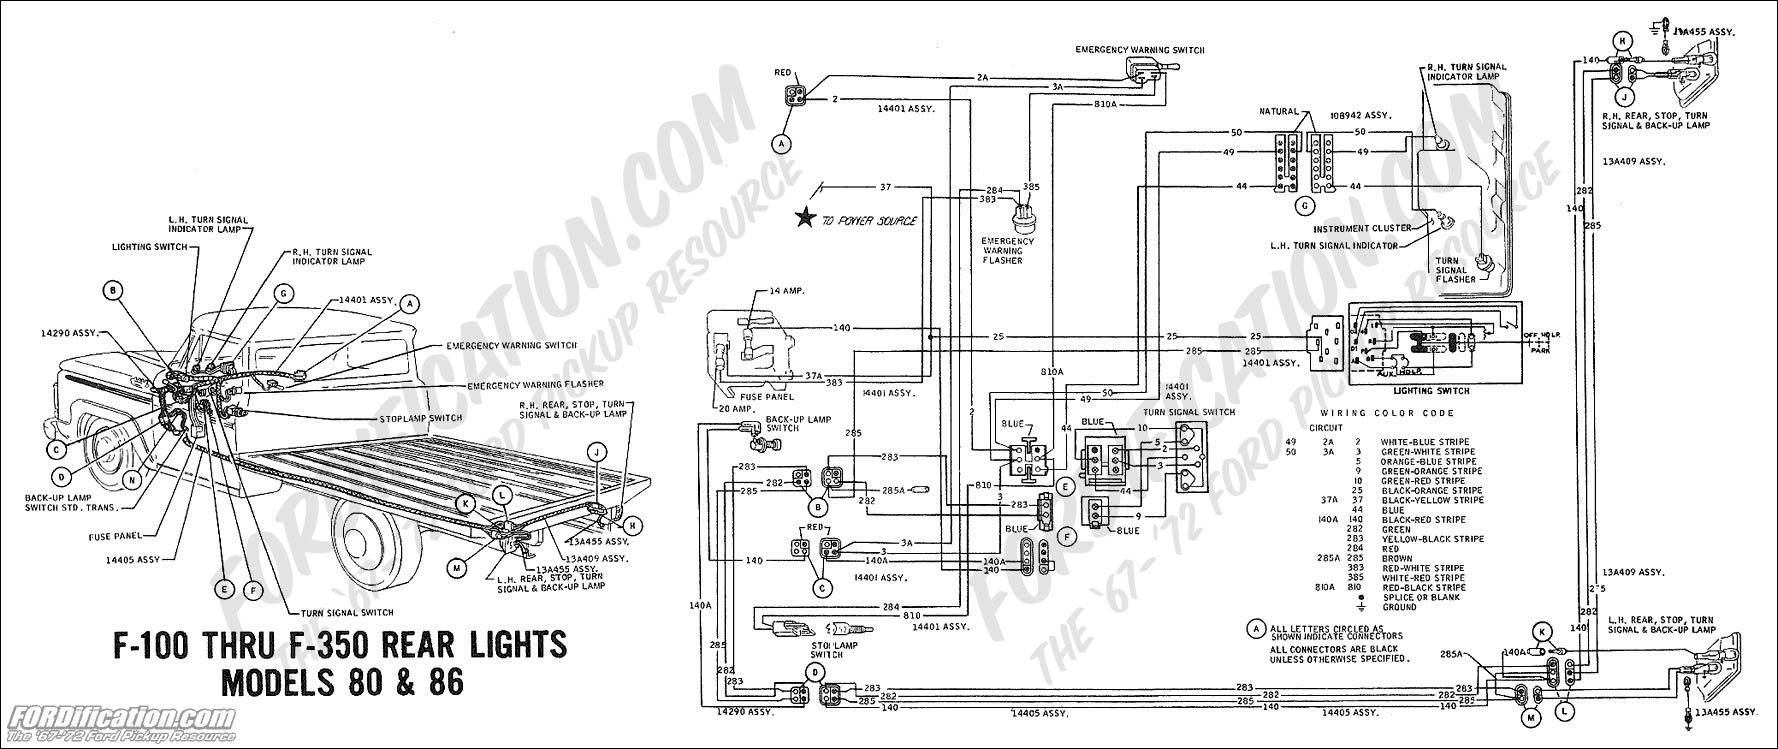 wiring_69rearlights mdls80 86 1994 f700 wiring diagram on 1994 download wirning diagrams 1979 Corvette Fuse Box Diagram at mr168.co